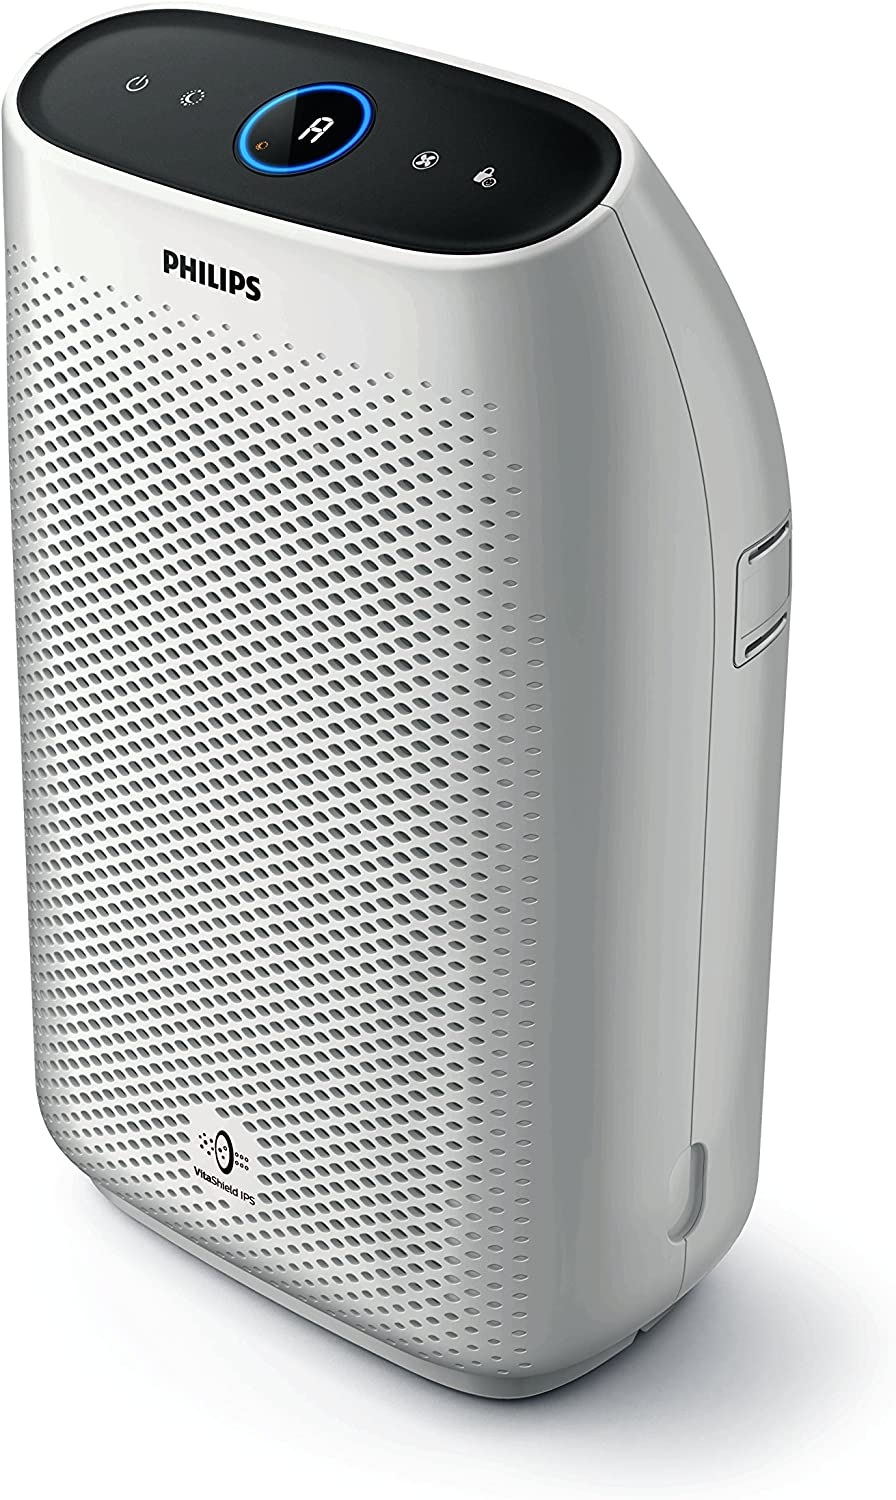 Image of Philips Air Purifier Series 1000